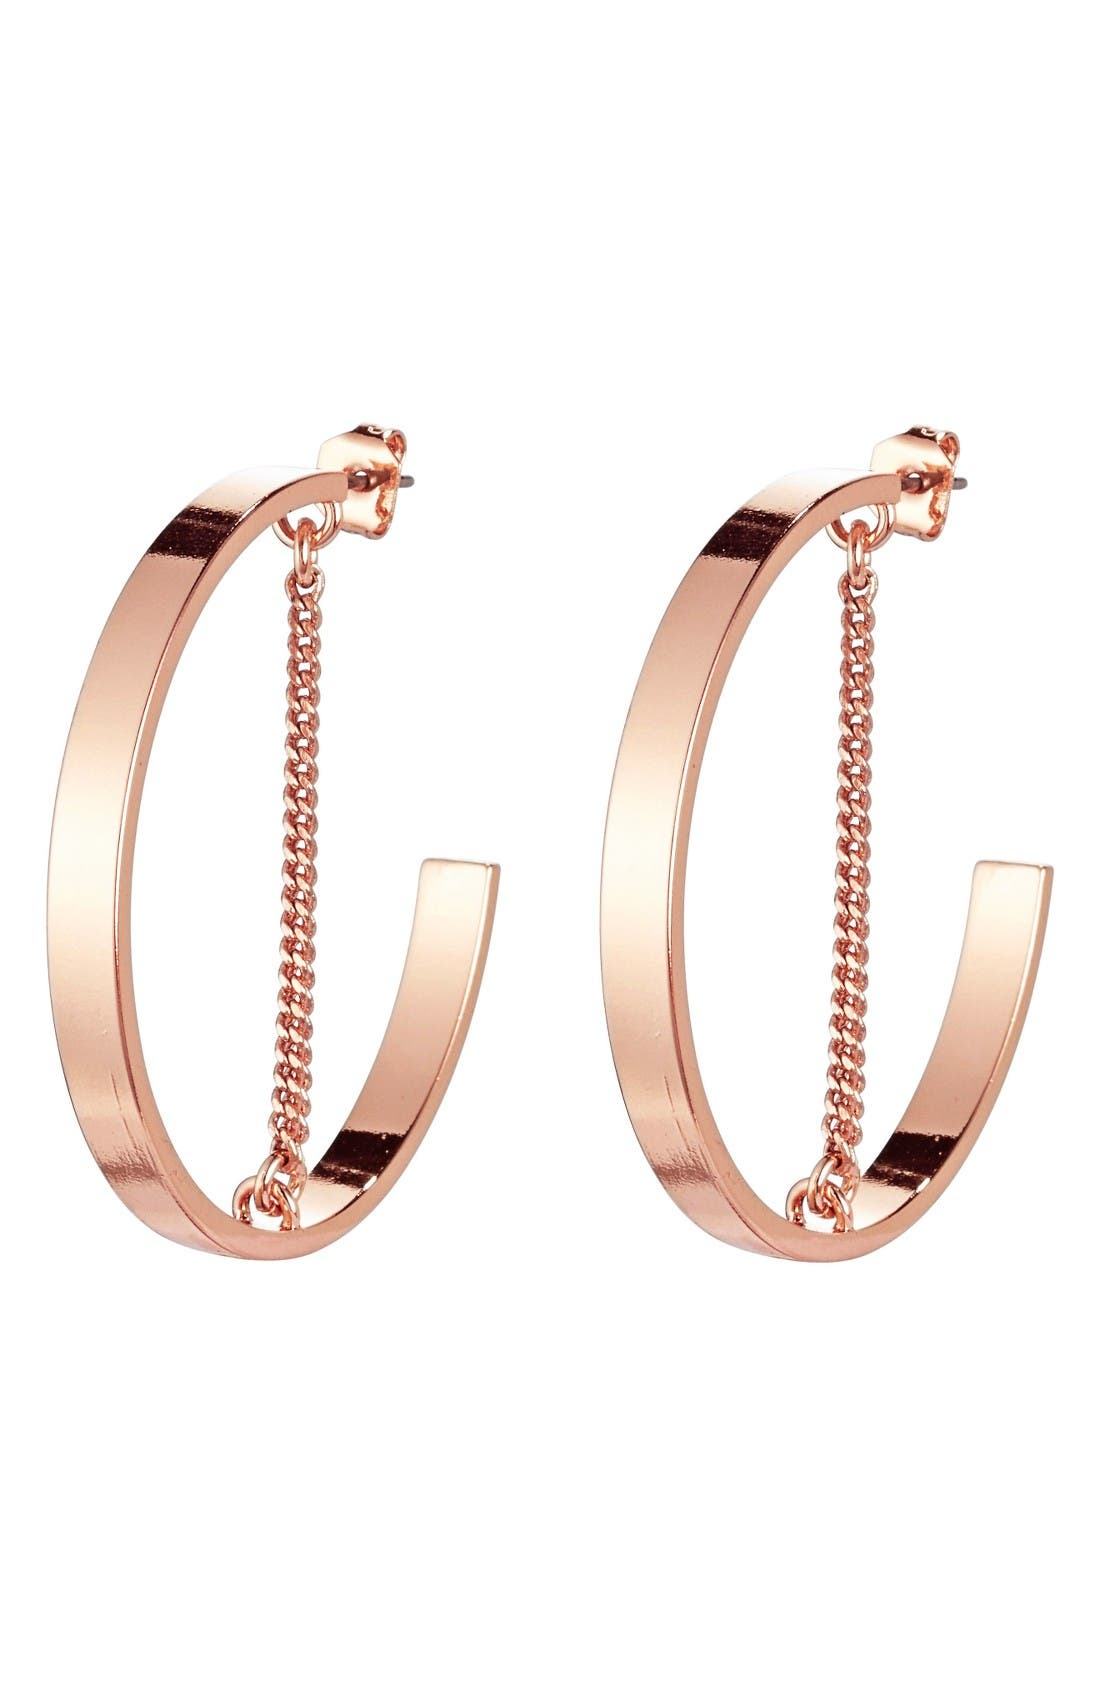 Main Image - Jenny Bird Mia Hoop Earrings